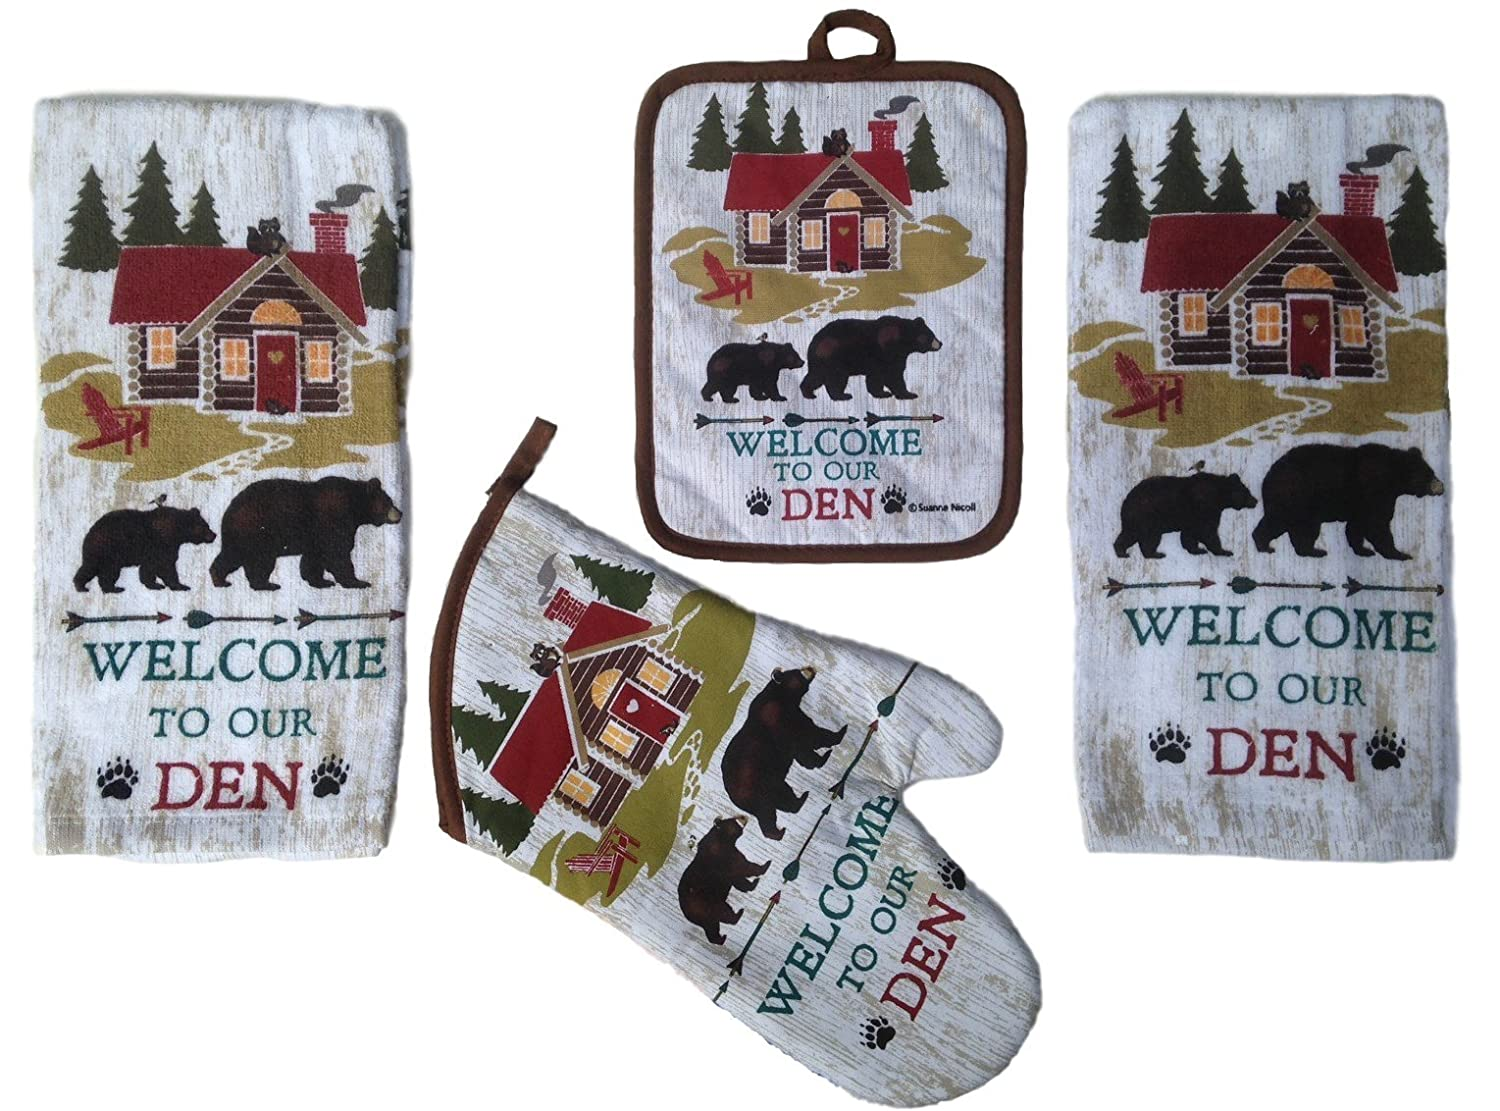 4 Piece Welcome to Our Den Kitchen Linen Set - 2 Terry Towels, Oven Mitt, Potholder N/A